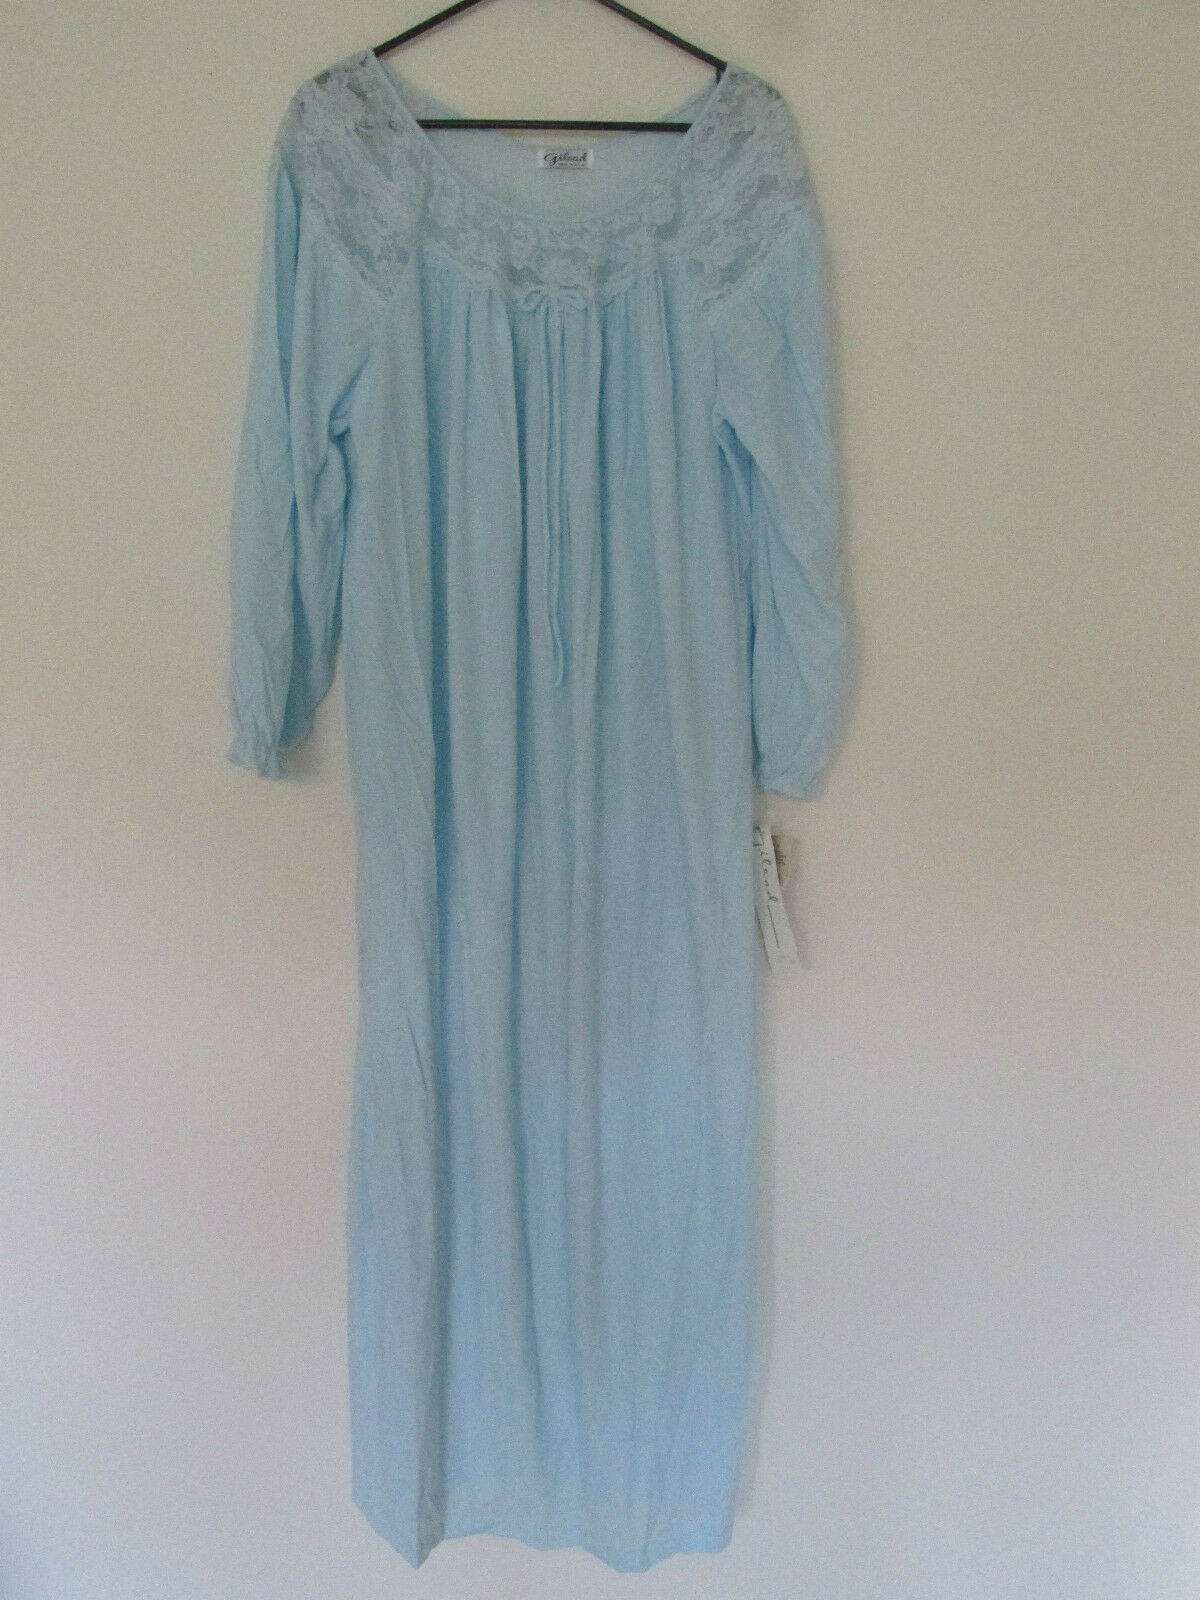 New with Tags Vintage Women's Gilead Night Gown Light bluee Lace XXL 2XL Made USA